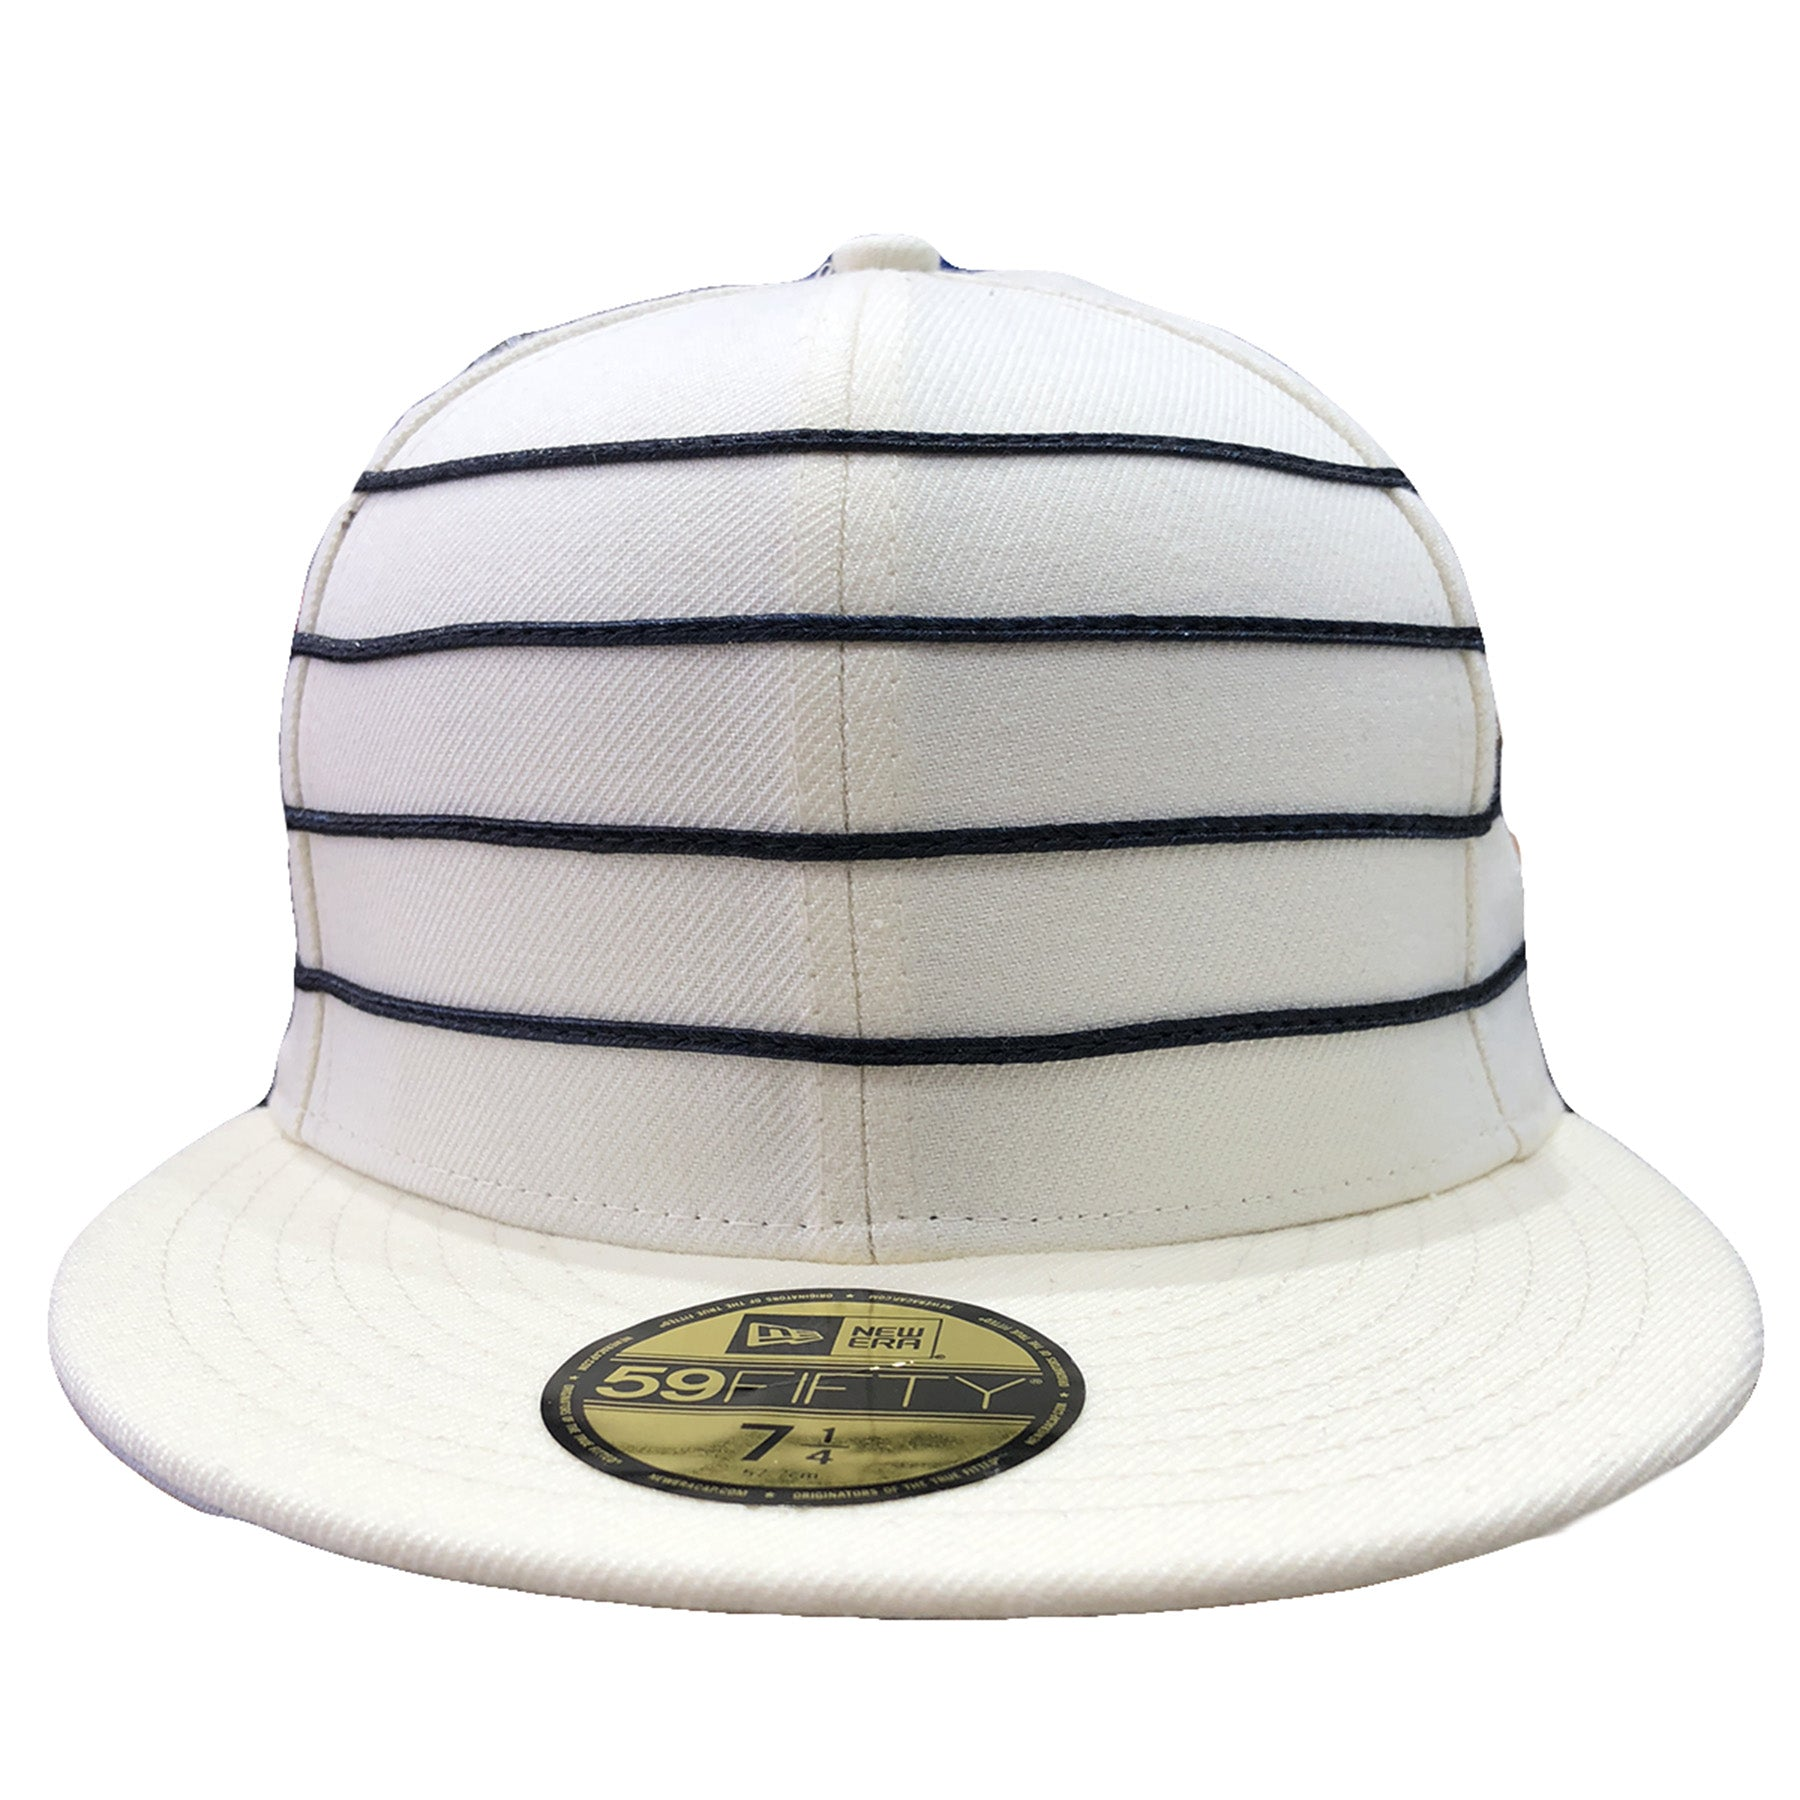 promo code 2f53d 016bb across the 1910 philadelphia athletics world series historic fitted cpa are  4 horizontal stripes